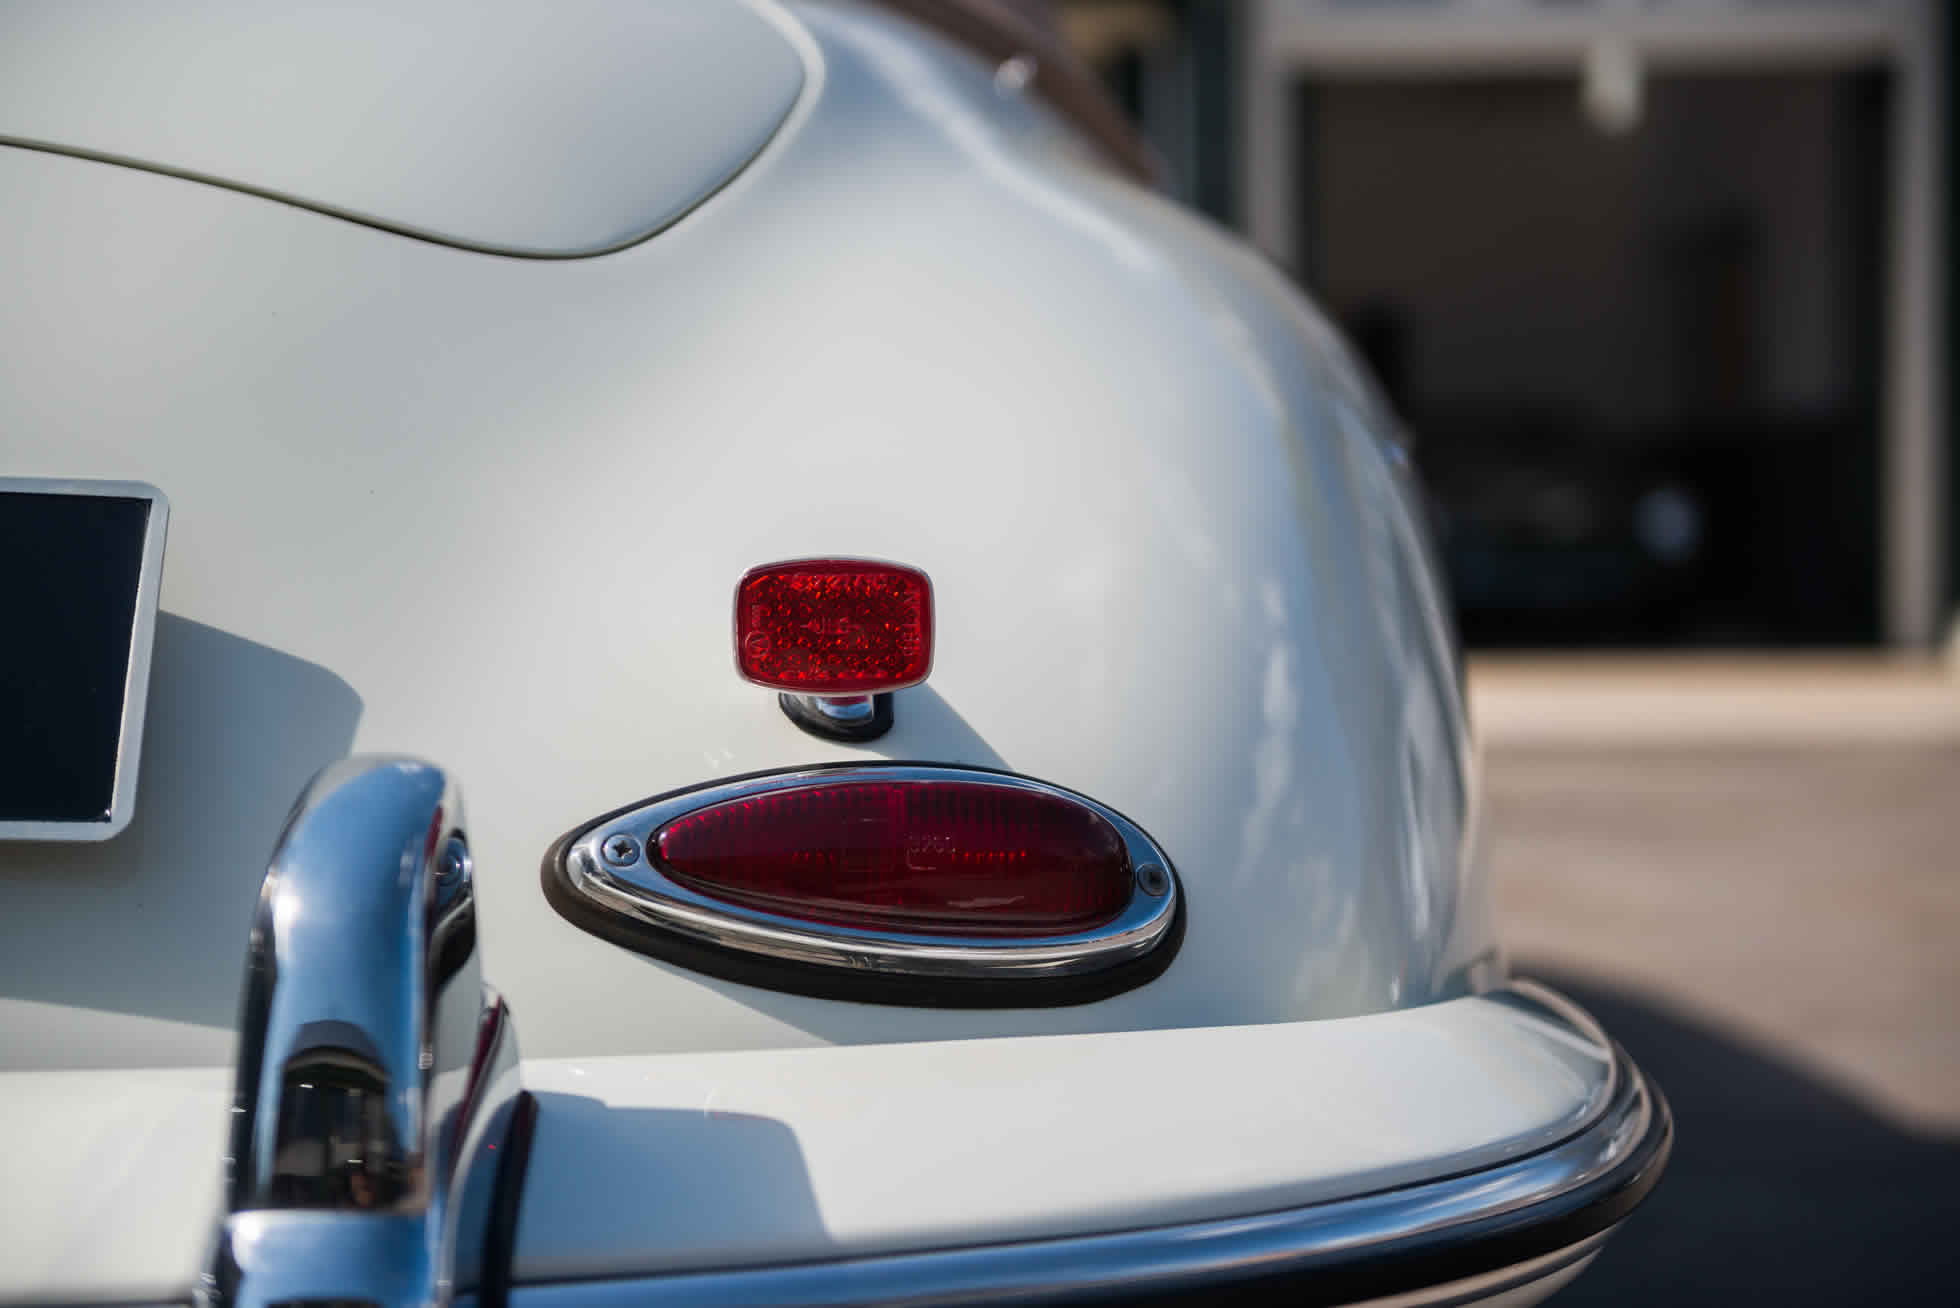 For Sale 1961 Porsche 356B S90 Roadster rear view lights